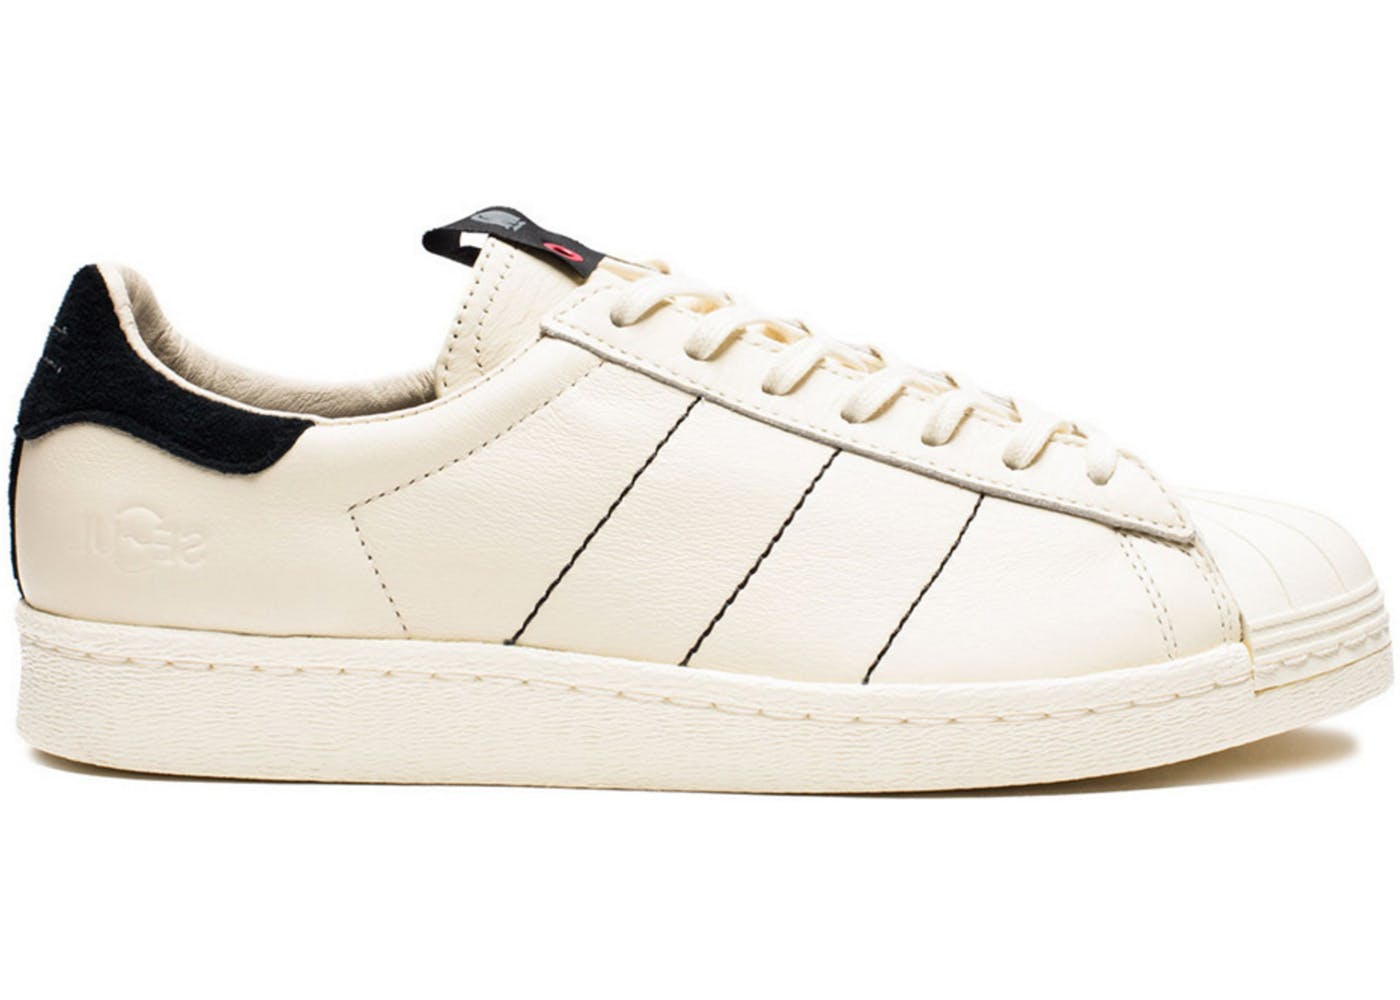 Adidas Superstar Women White Rose Gold BB1428 UK 7